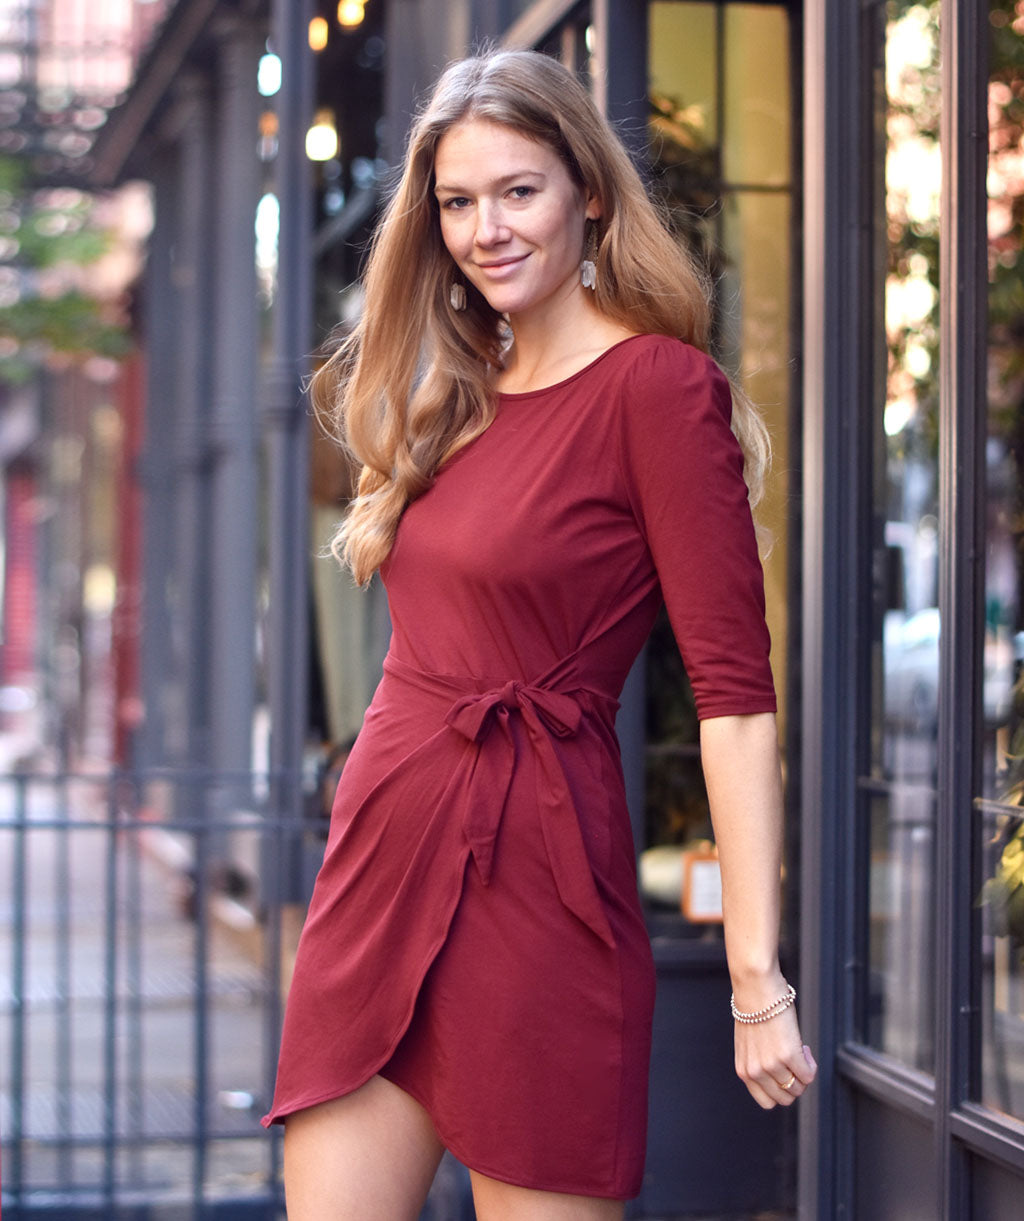 The JOANNA dress in Burgundy